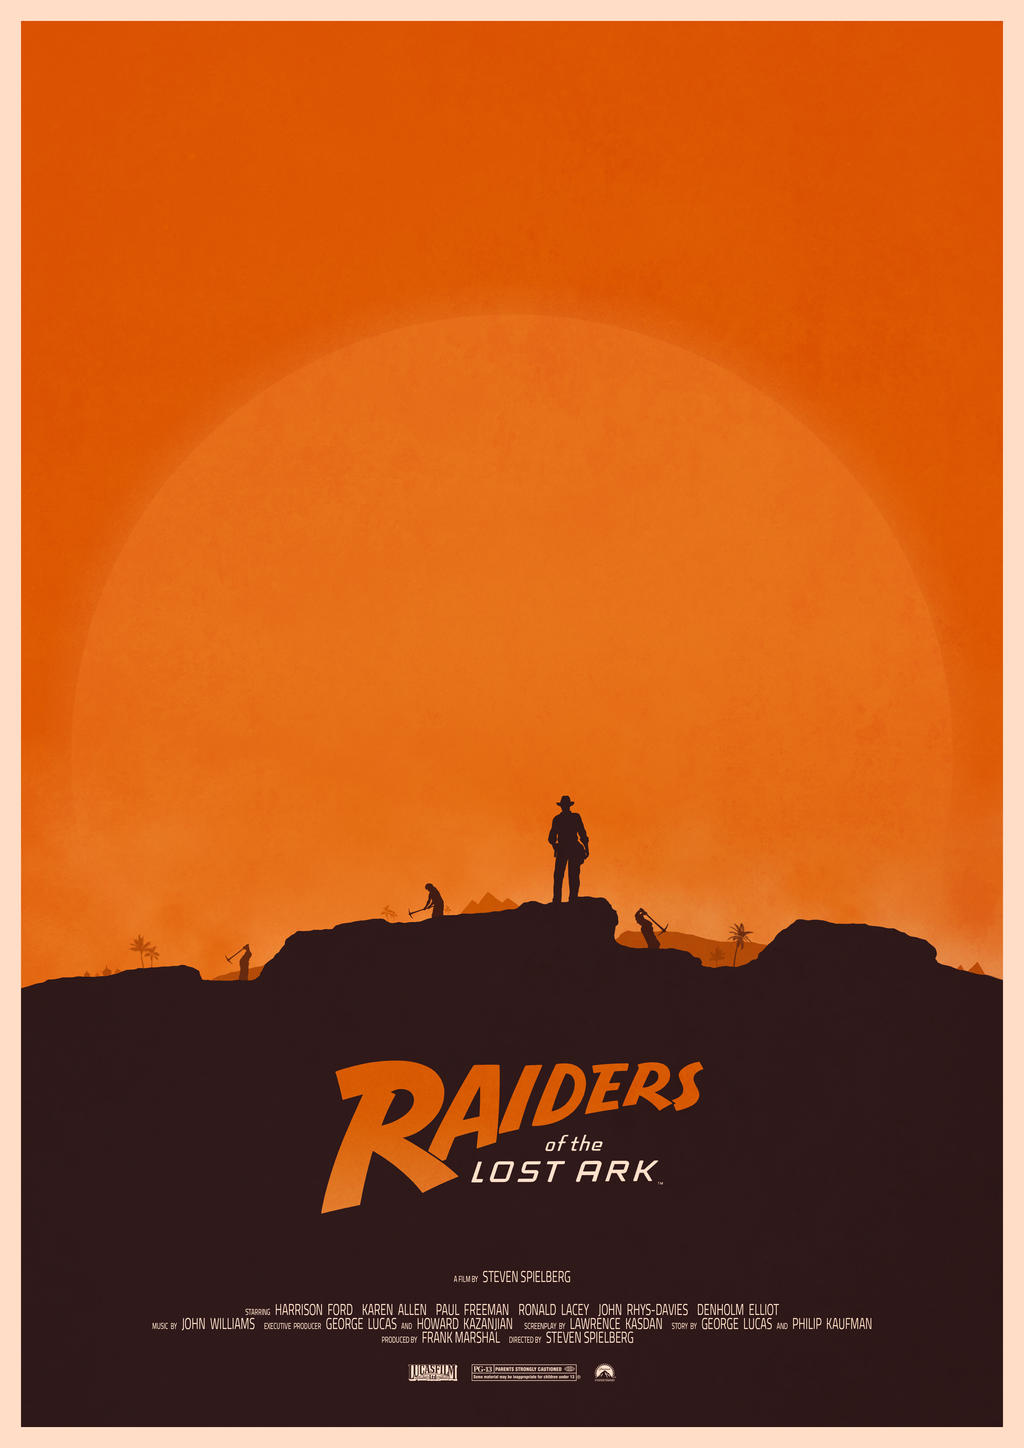 Raiders of the Lost Ark by Deluxepepsi